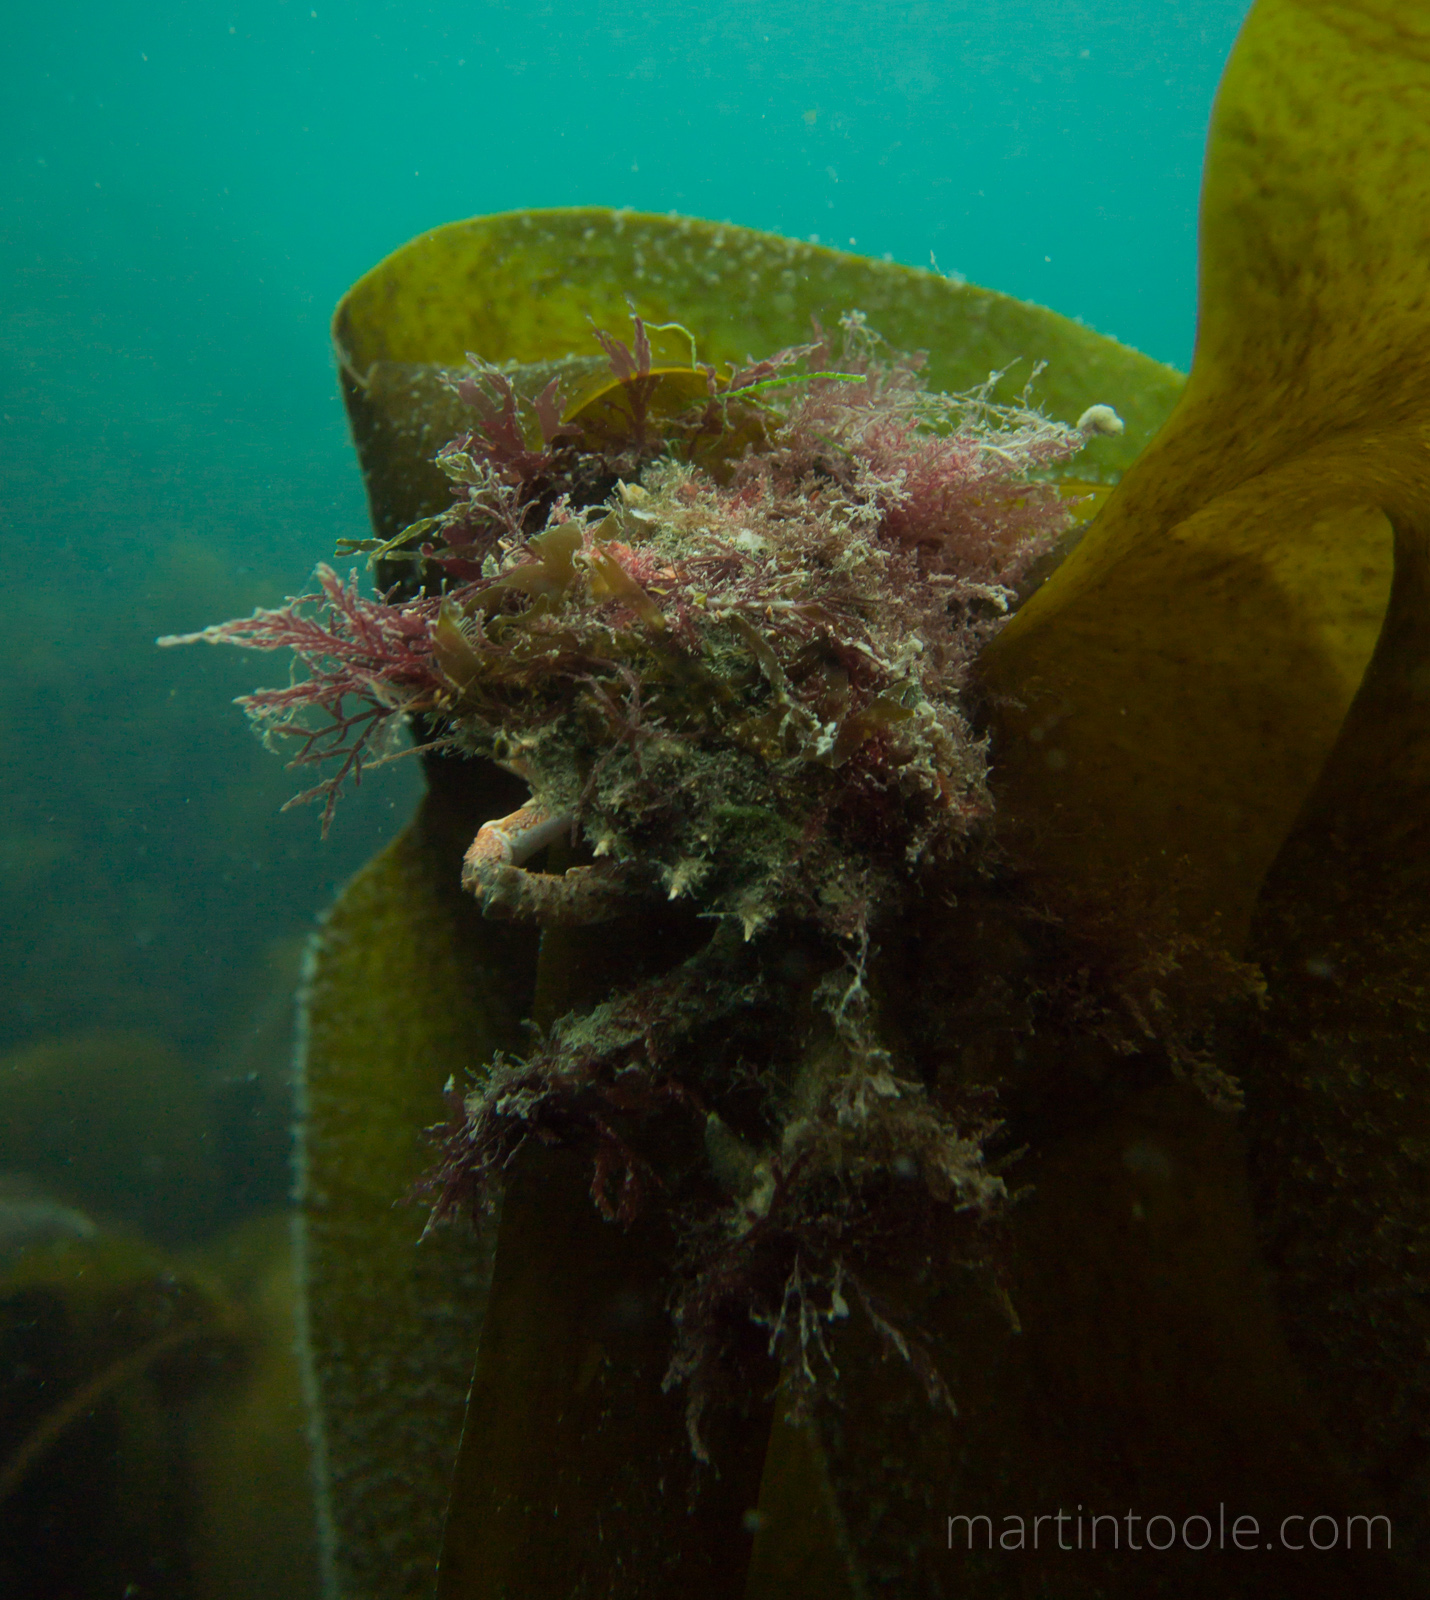 Spider Crab Amongst Kelp Seaweed At Martins Haven, Pembrokeshire